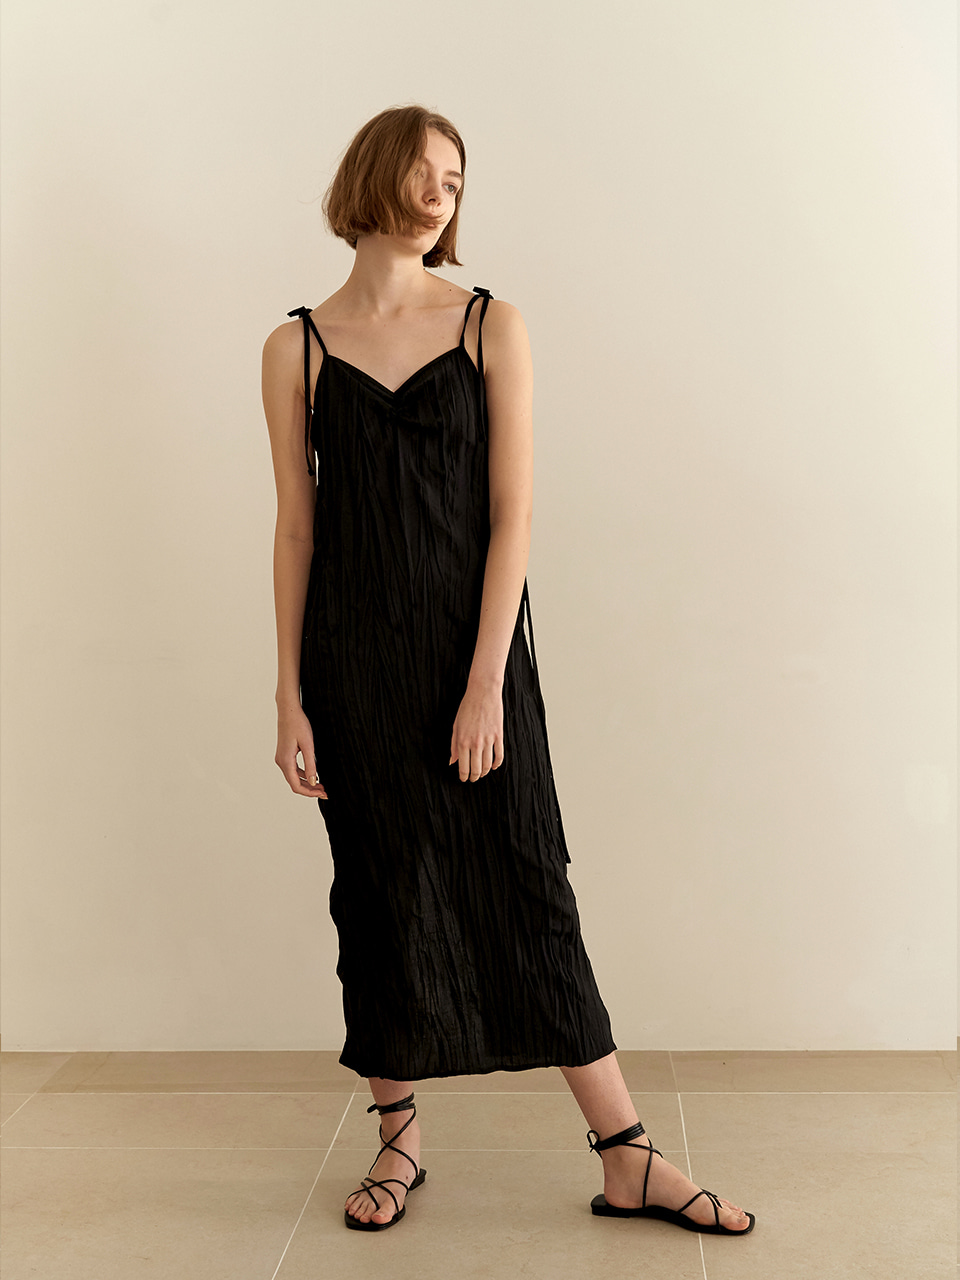 Resort wrinkle dress - black [5/22예약배송]